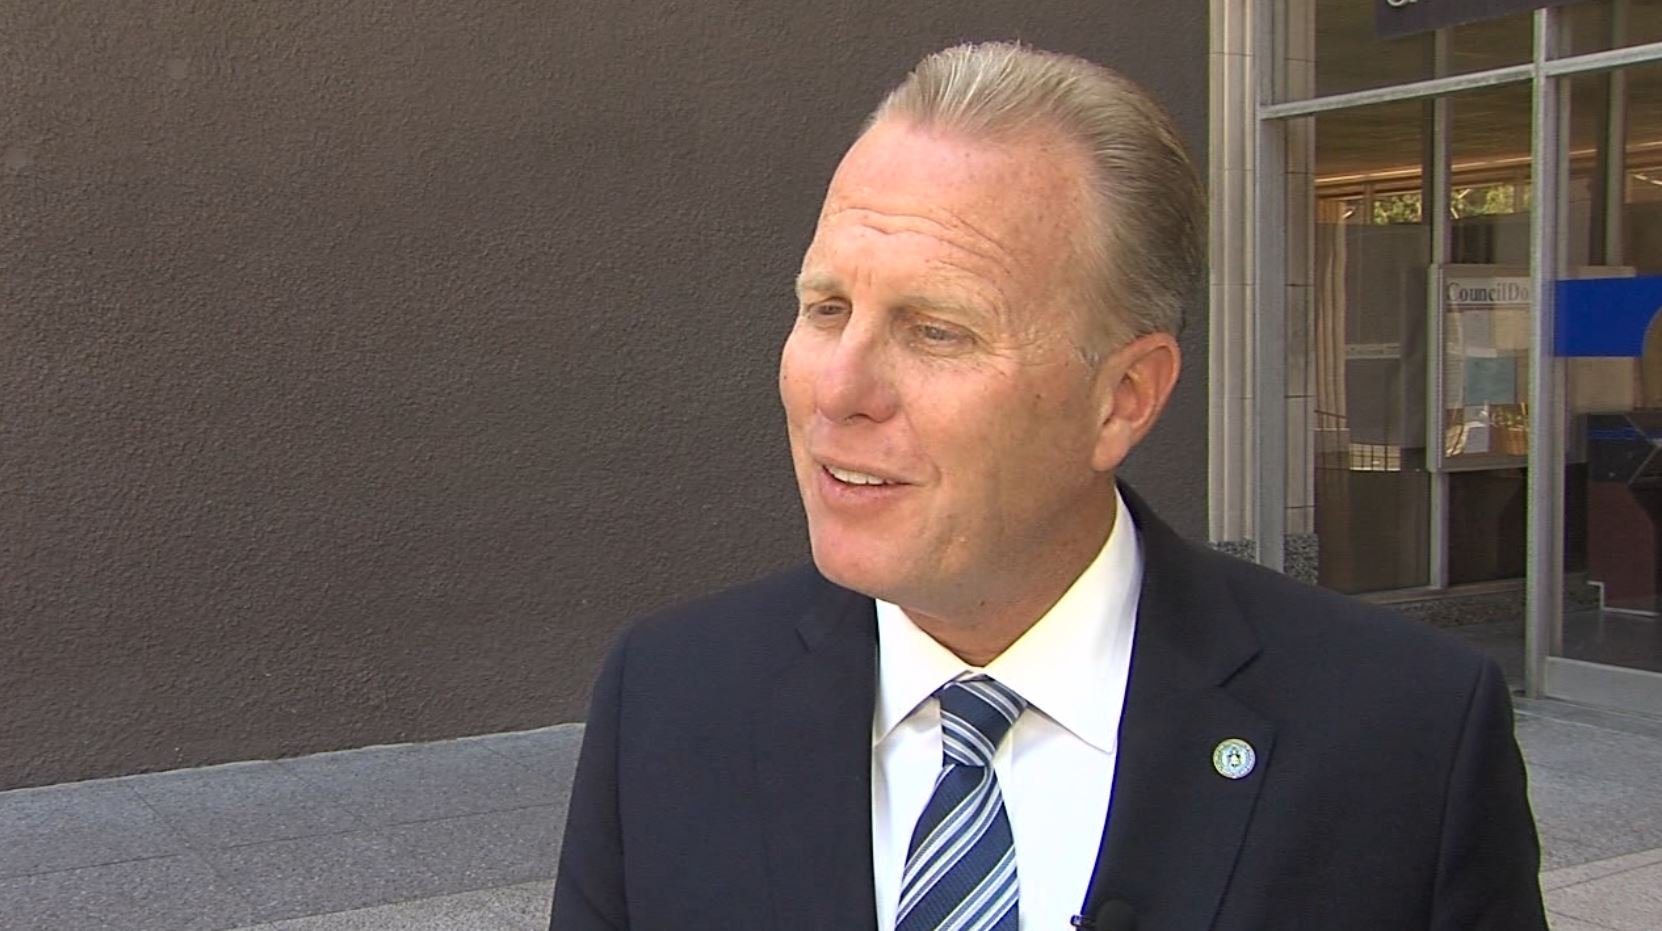 Mayor Faulconer discusses SoccerCity and Convention Center expansion in one-on-one interview